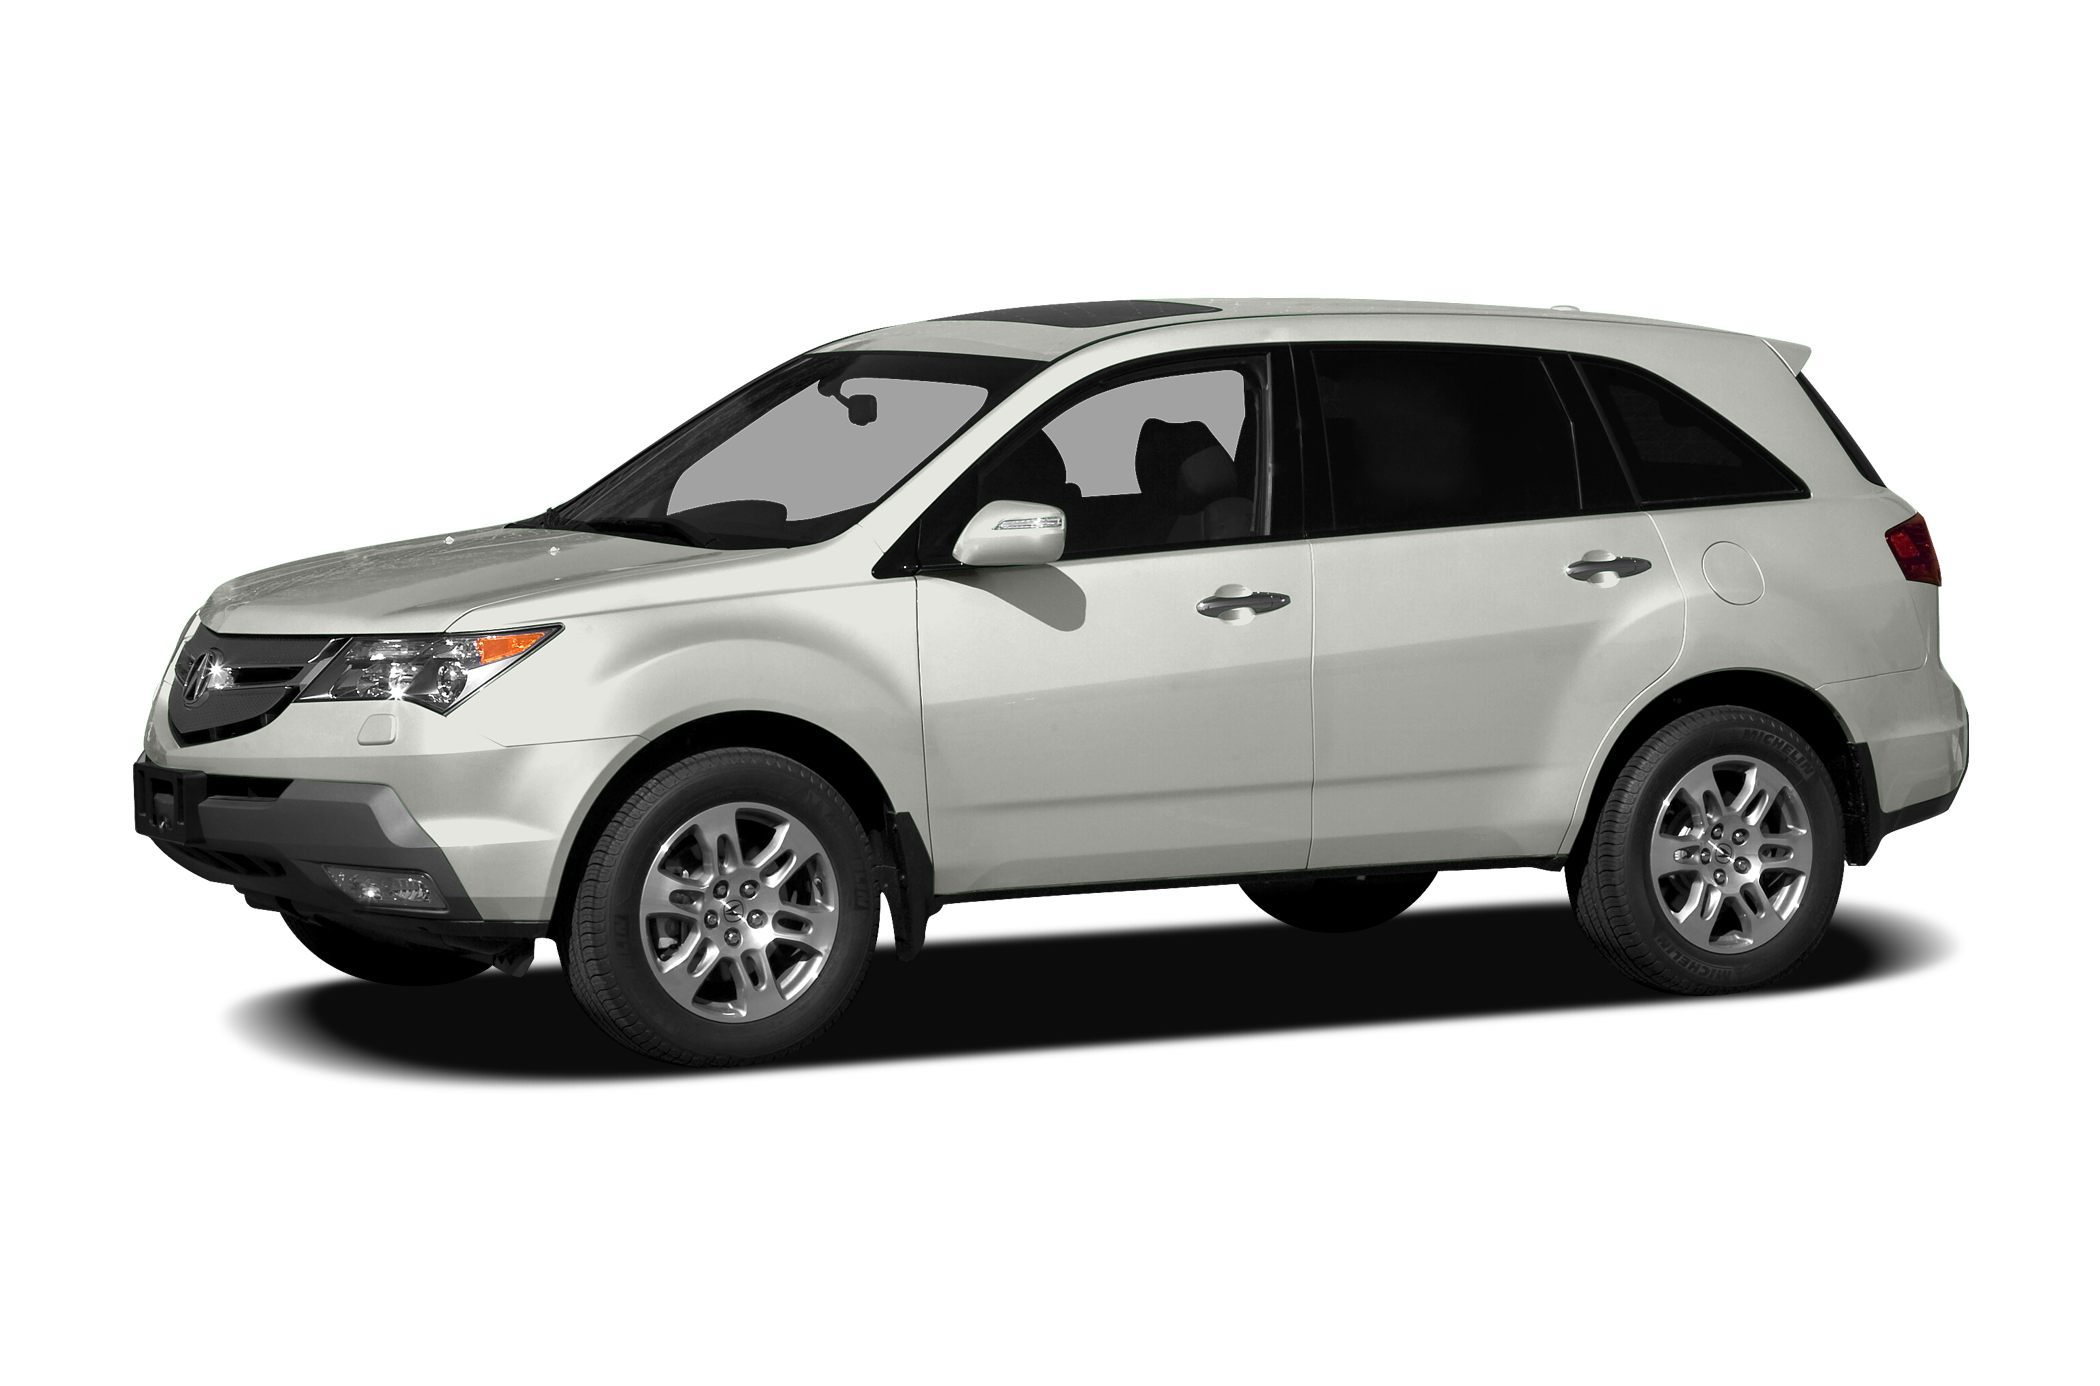 2009 Acura MDX Specs and Prices